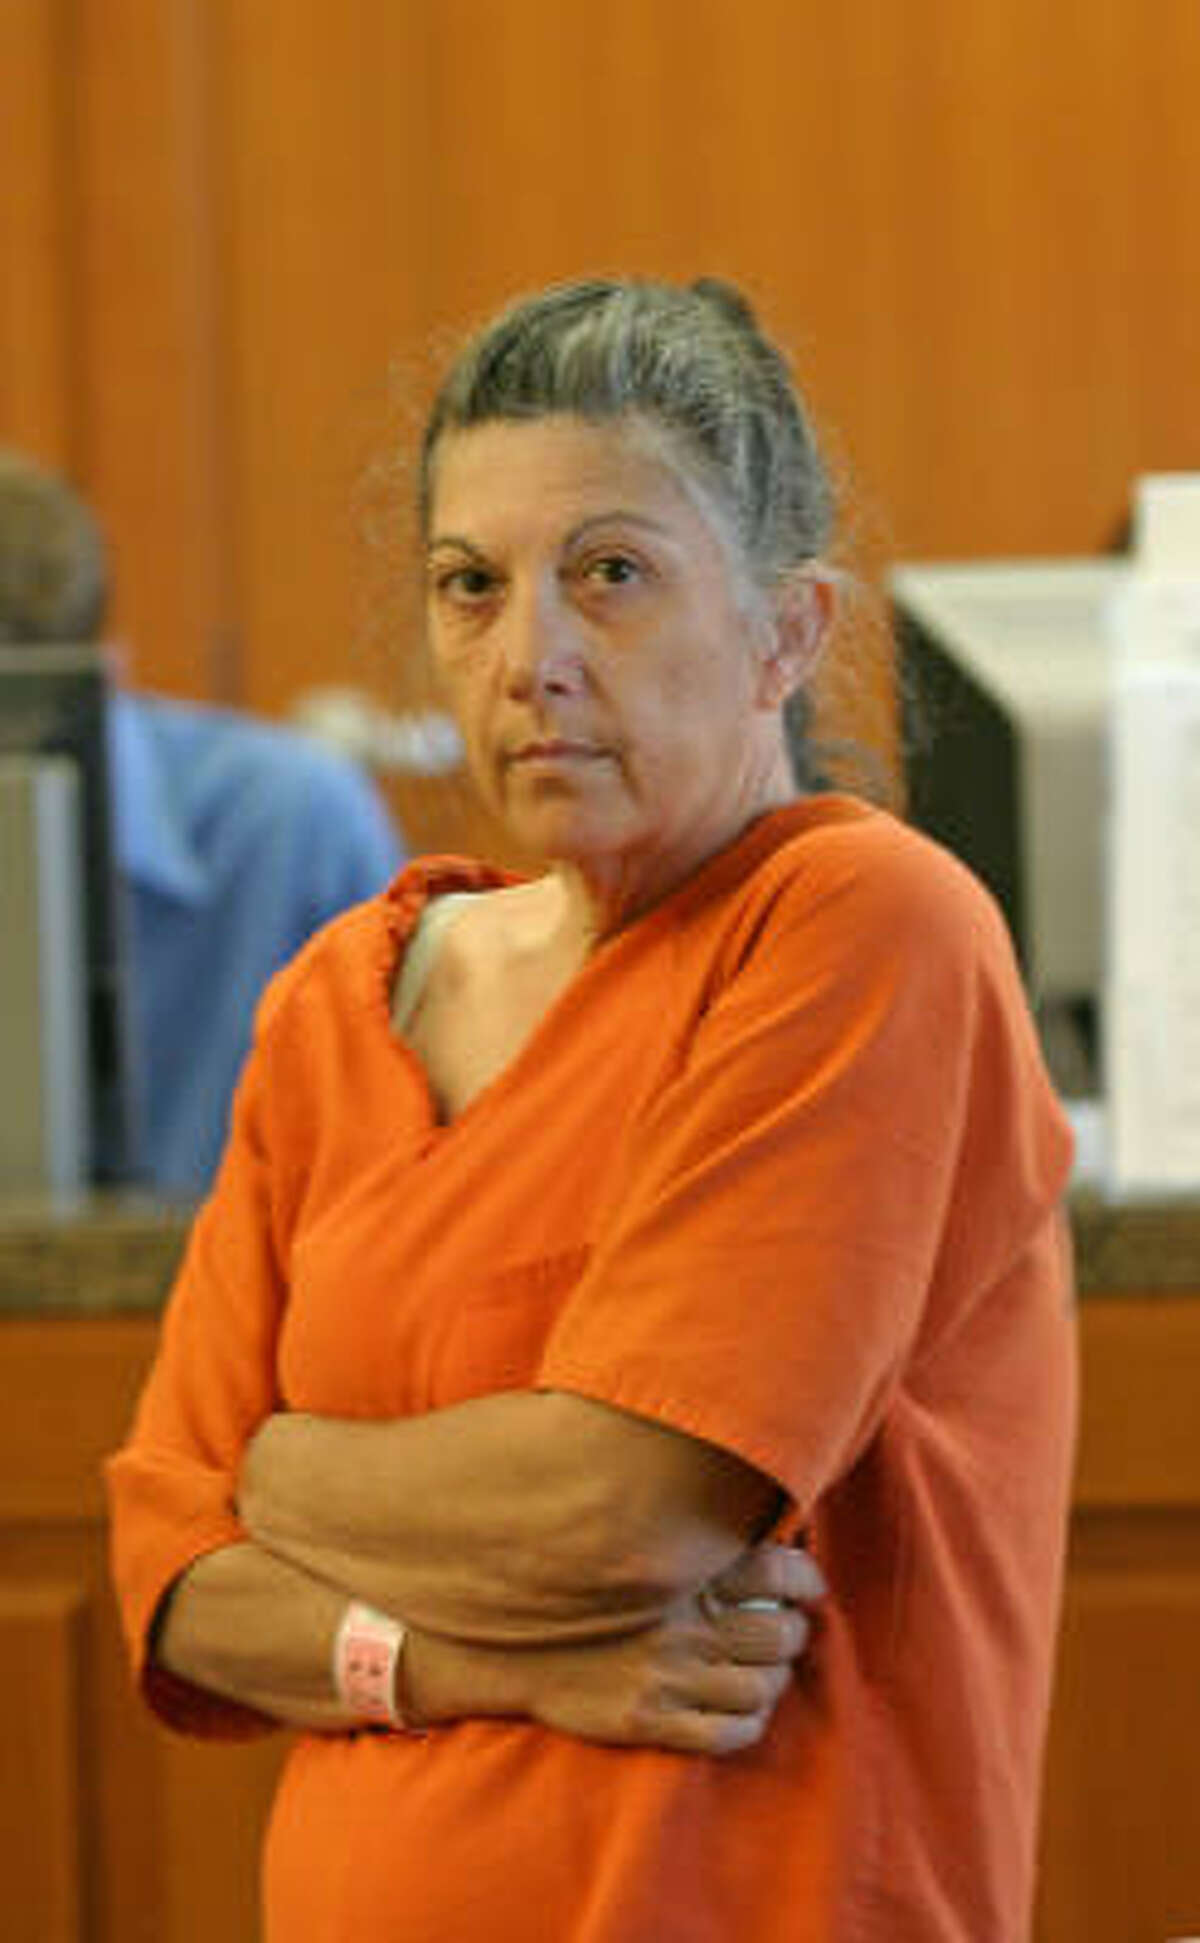 Linda A. Ballew waits in civic court to return to the county jail where she was to be released after her hearing in Judge Mark Davidson's 111th District Court. Ballew had been found in contempt of court for not cutting her grass and trimming her trees as the judge had ordered her to do.